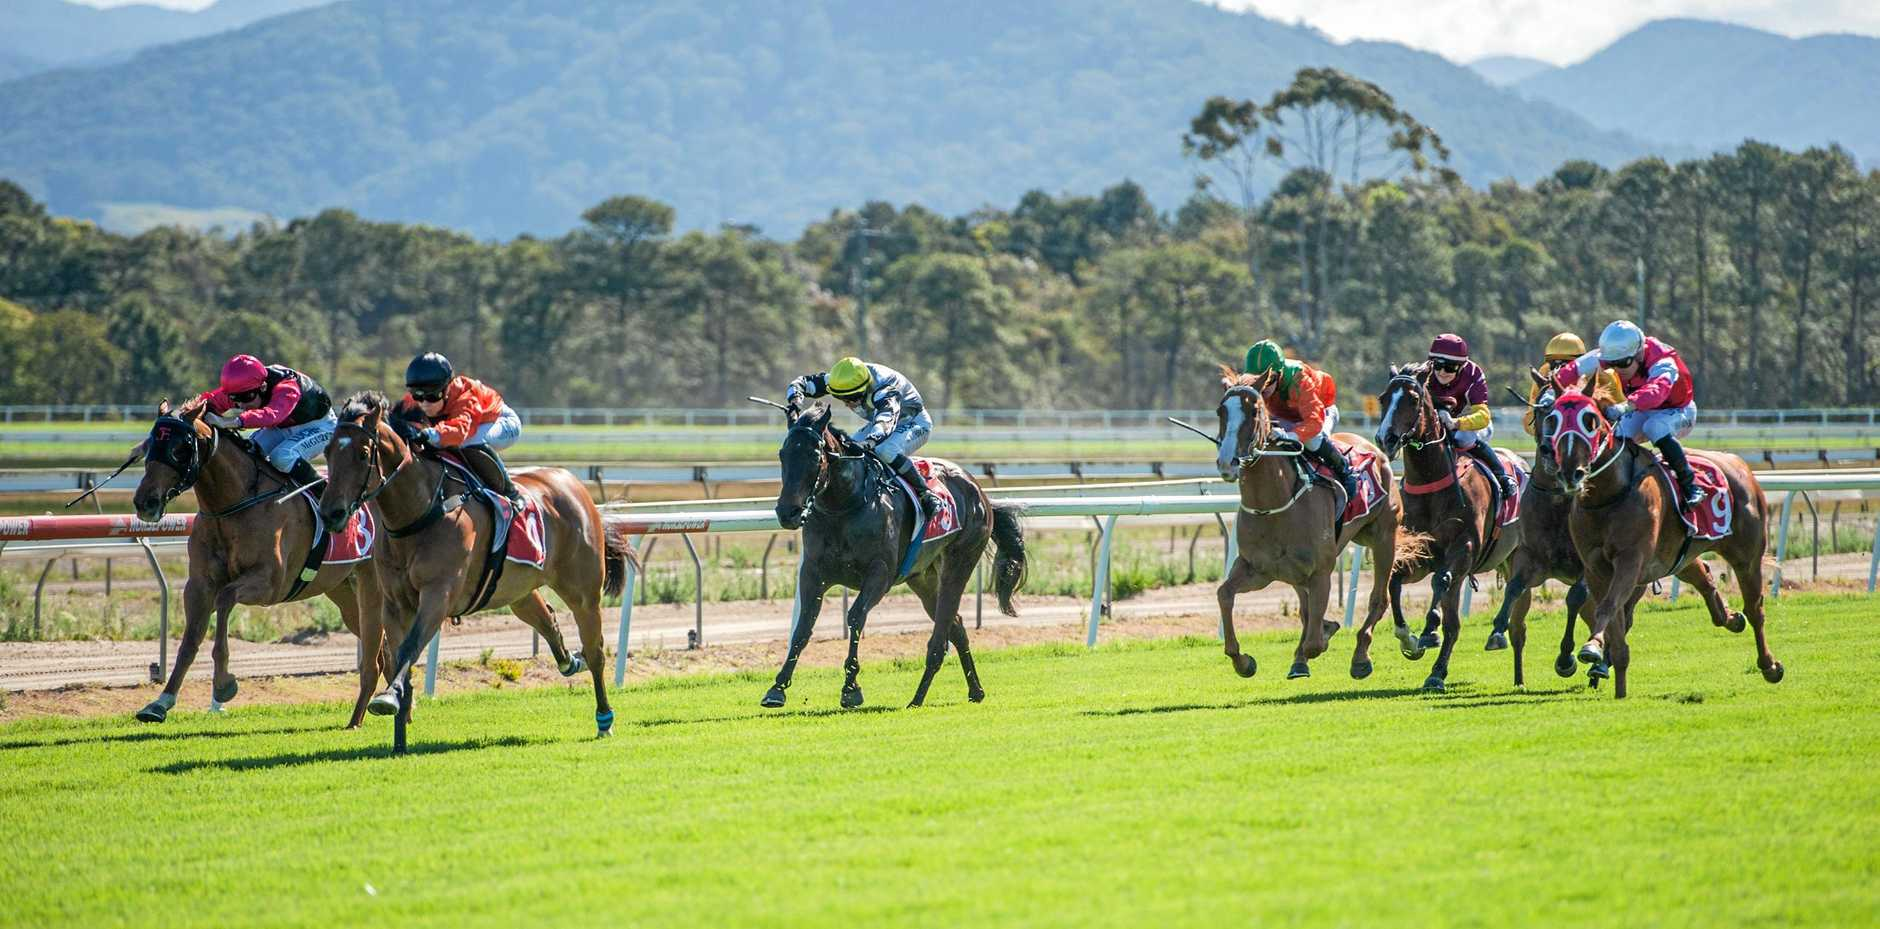 DOWN THE STRAIGHT: Coffs Harbour Racing Club is one of the most picturesque tracks in the country.